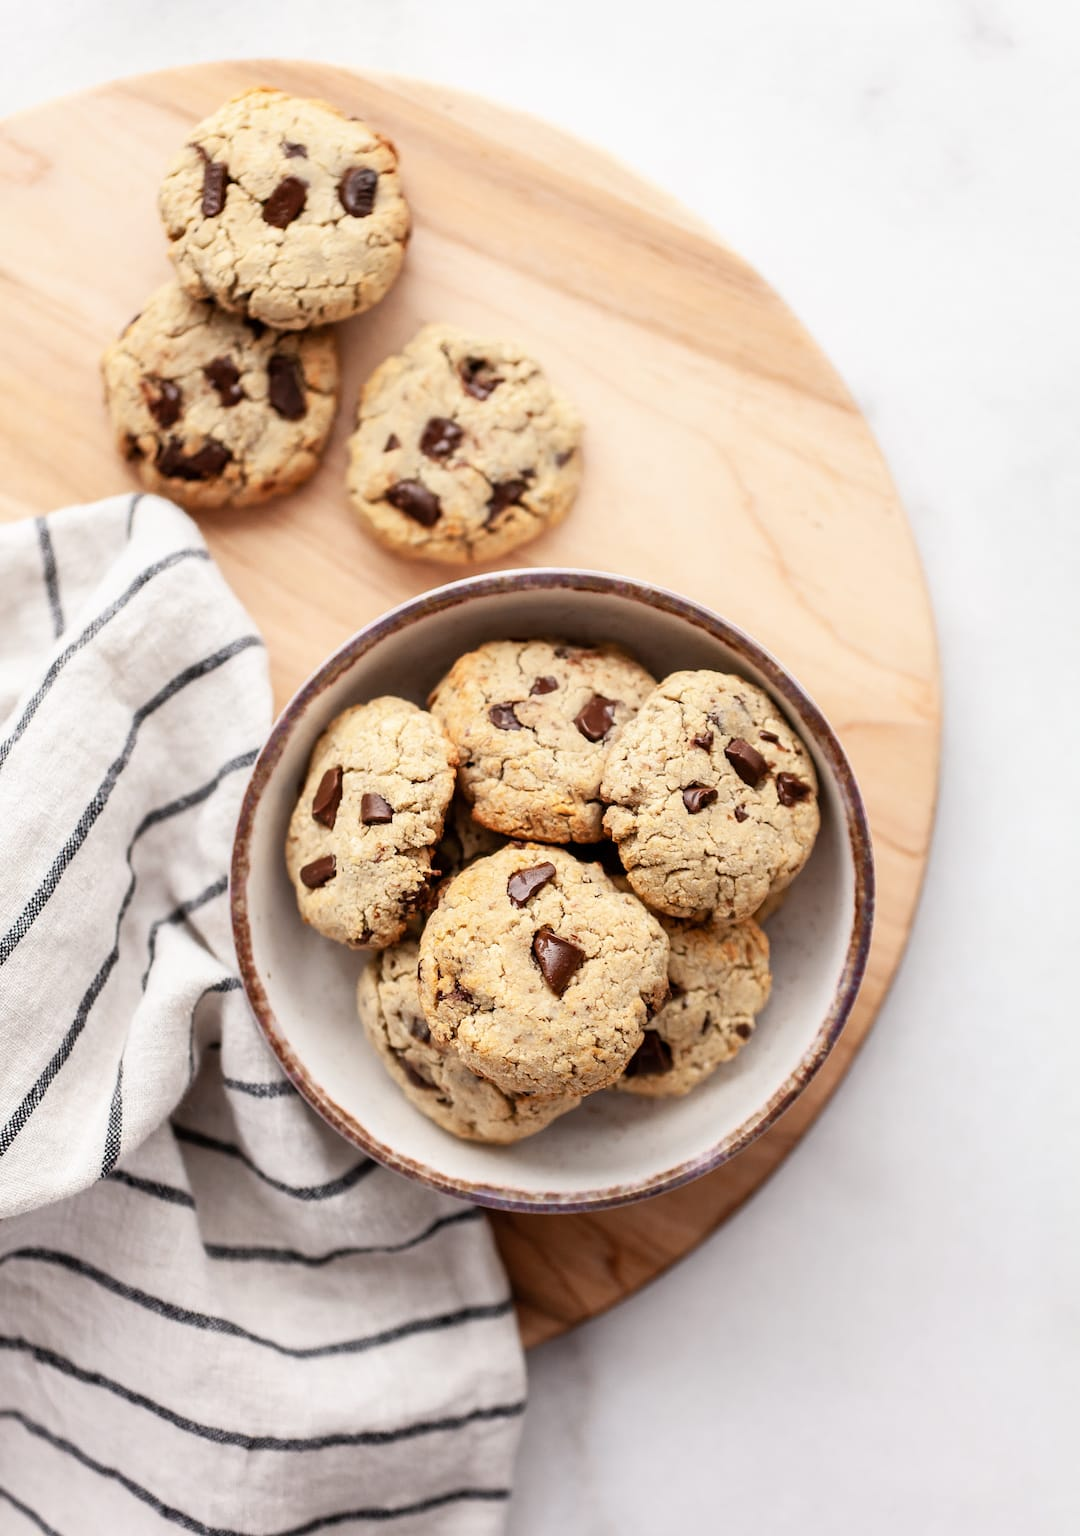 Soft & Chewy Coconut Flour Chocolate Chip Cookies In a Bowl on a Wood Platter